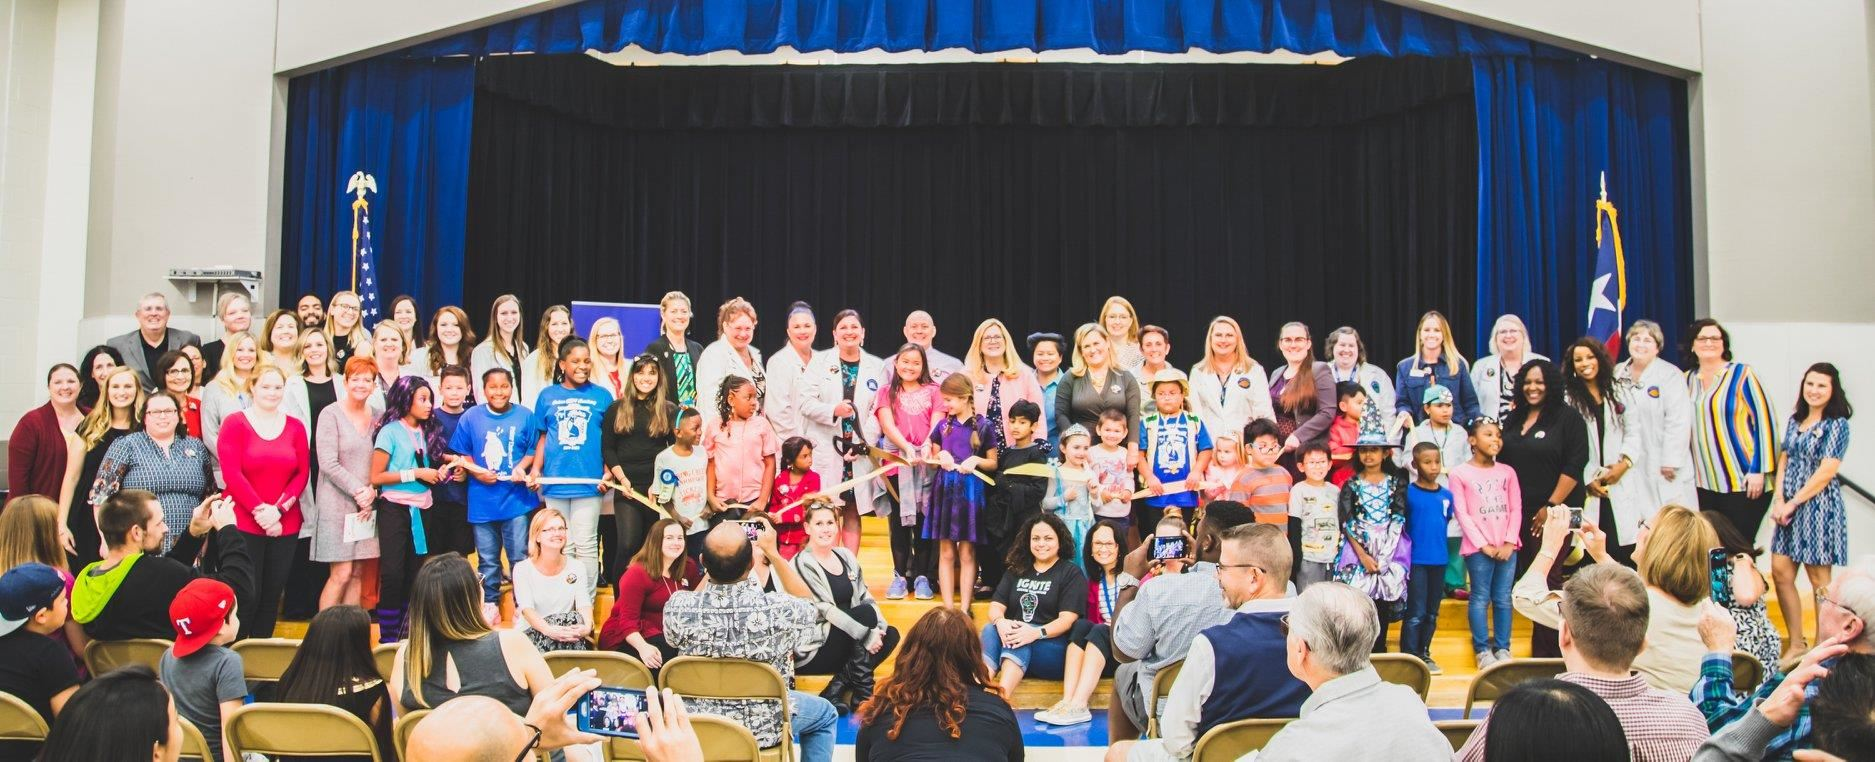 Polser Elementary Principal Lisa Phelps poses with students and staff before cutting the STEM Academies official ribbon. 2019